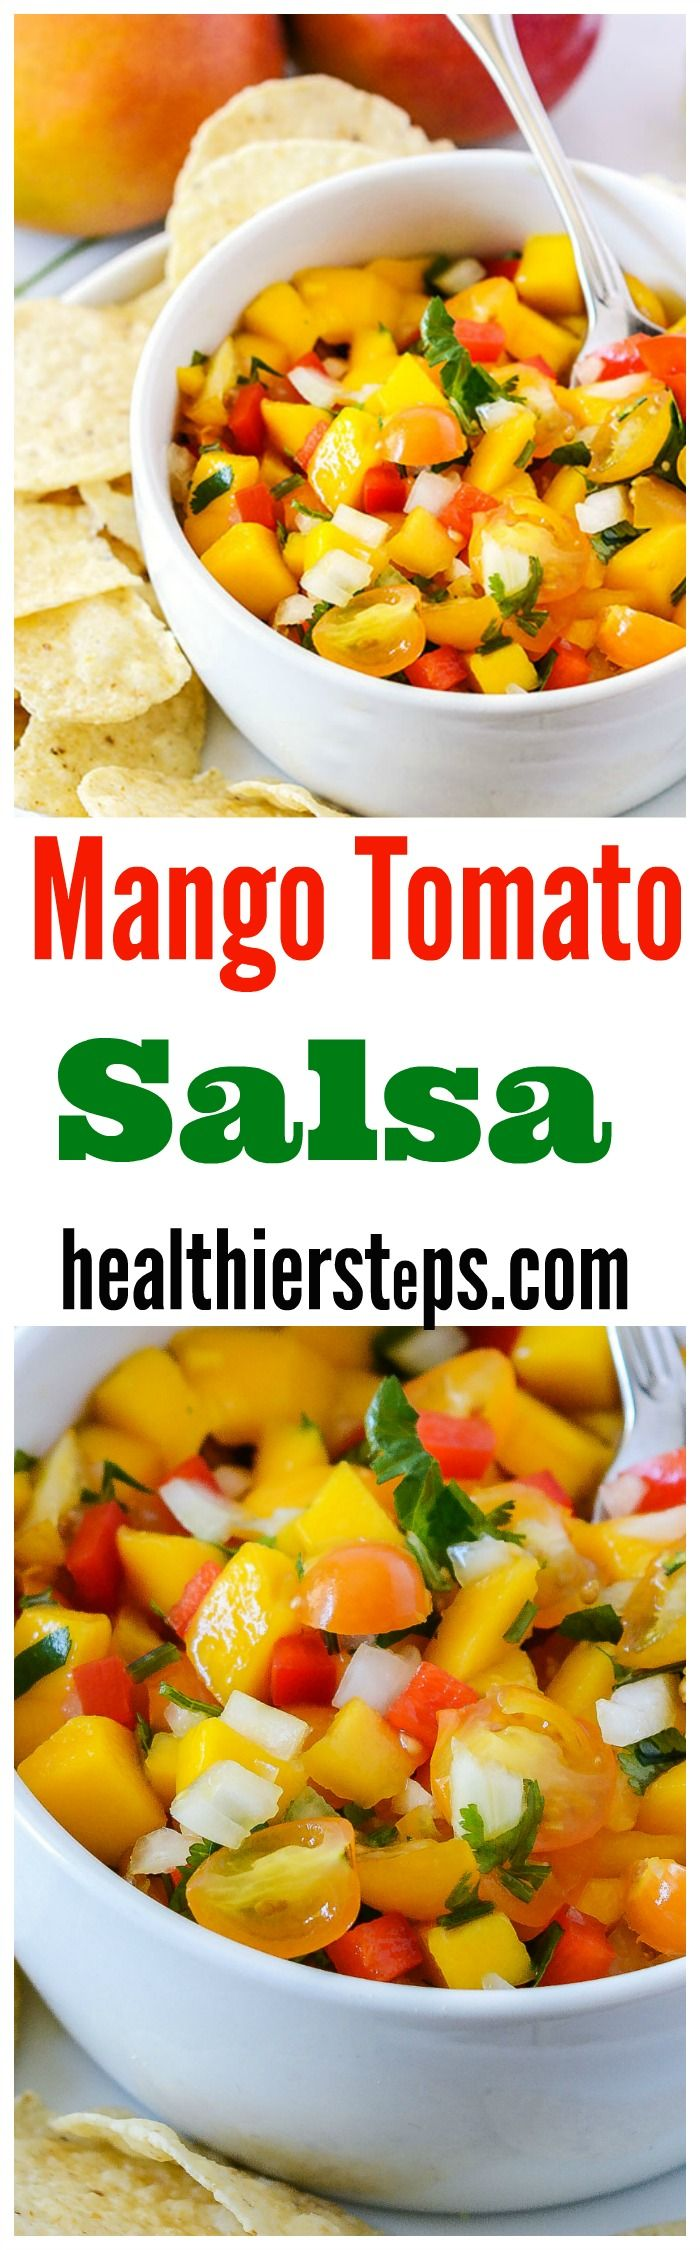 Mango Tomato Salsa, so easy and Delicious!